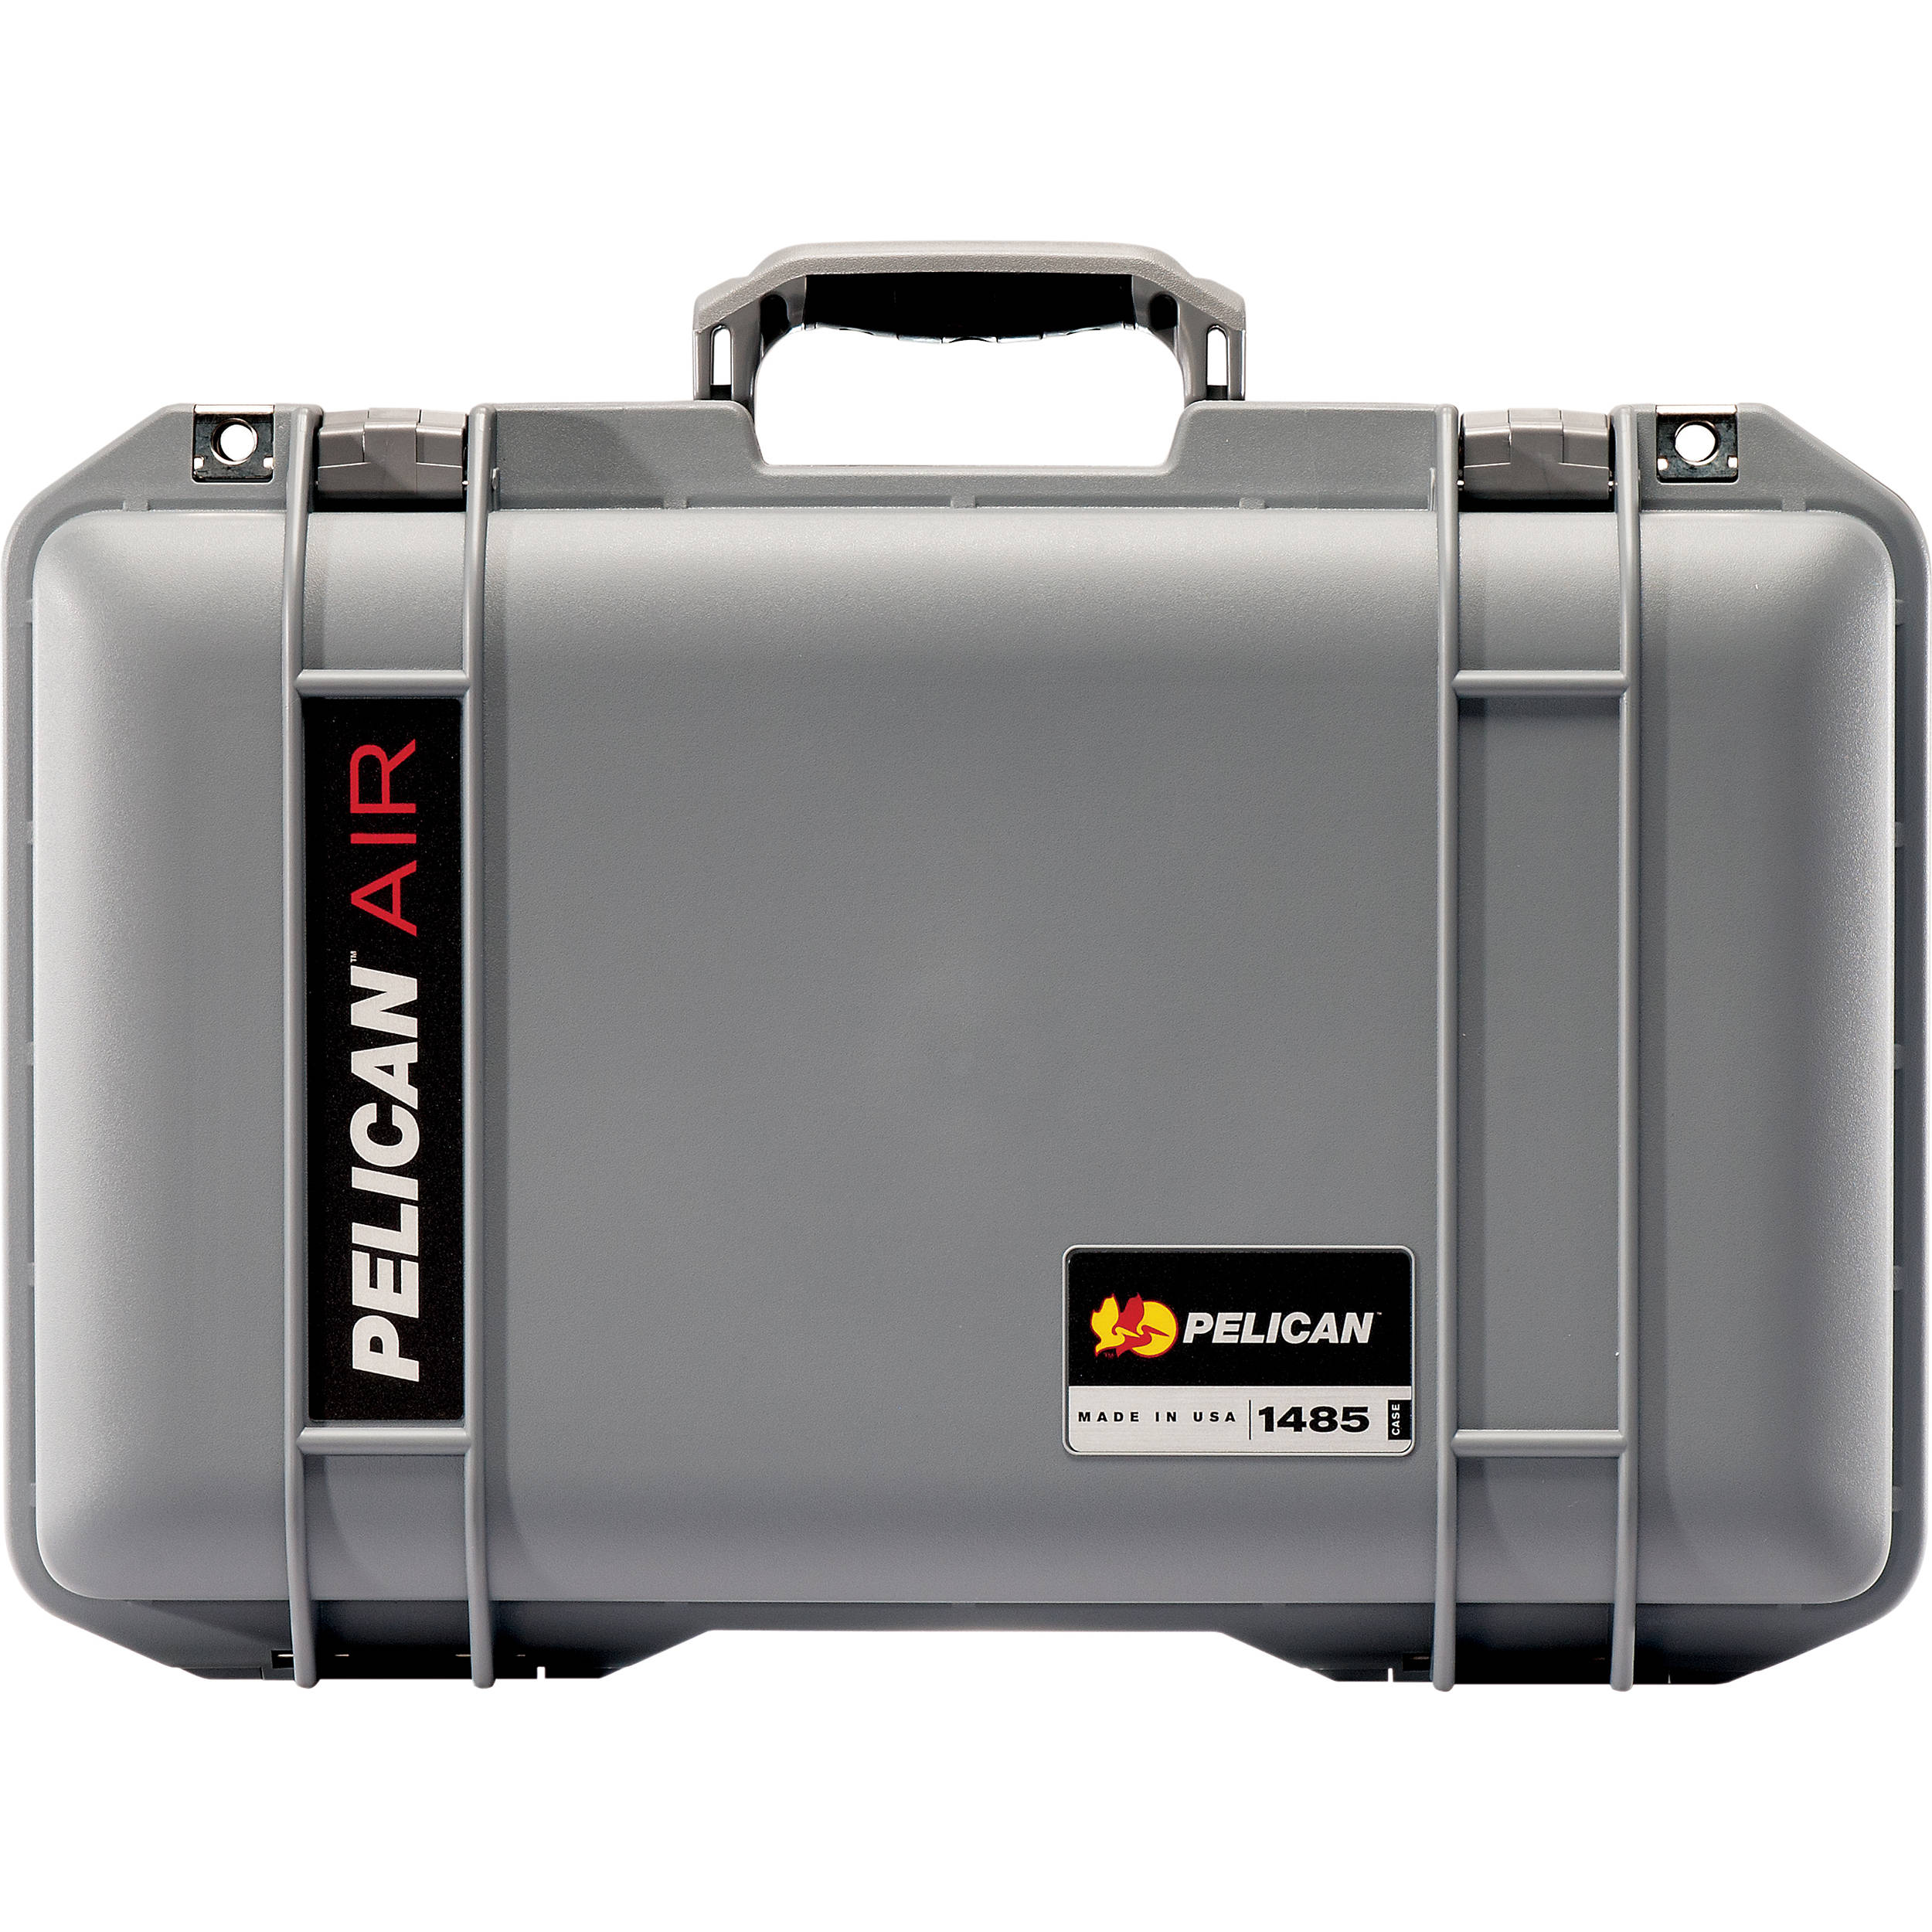 Silver /& Blue Pelican 1485 Air case with Yellow dividers.